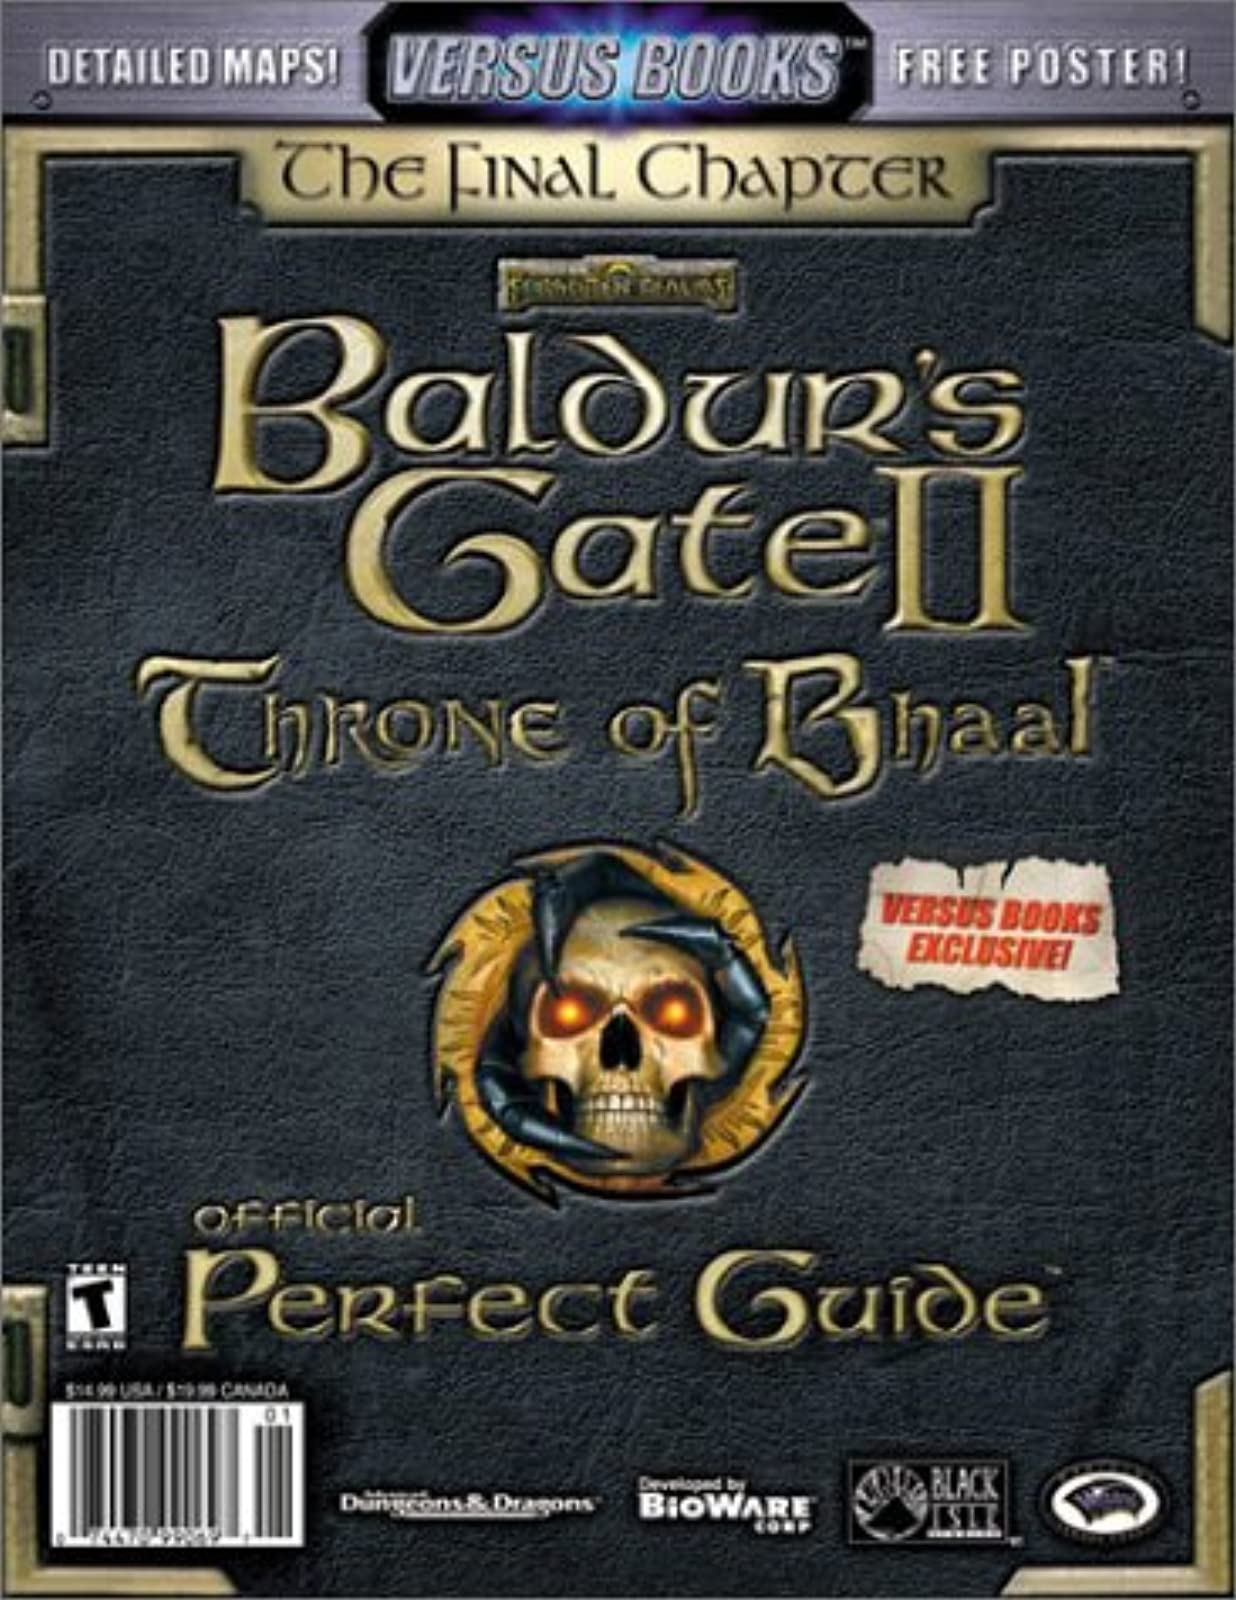 Versus Books Official Baldur's Gate II: Throne Of Bhaal Perfect Guide Strategy G